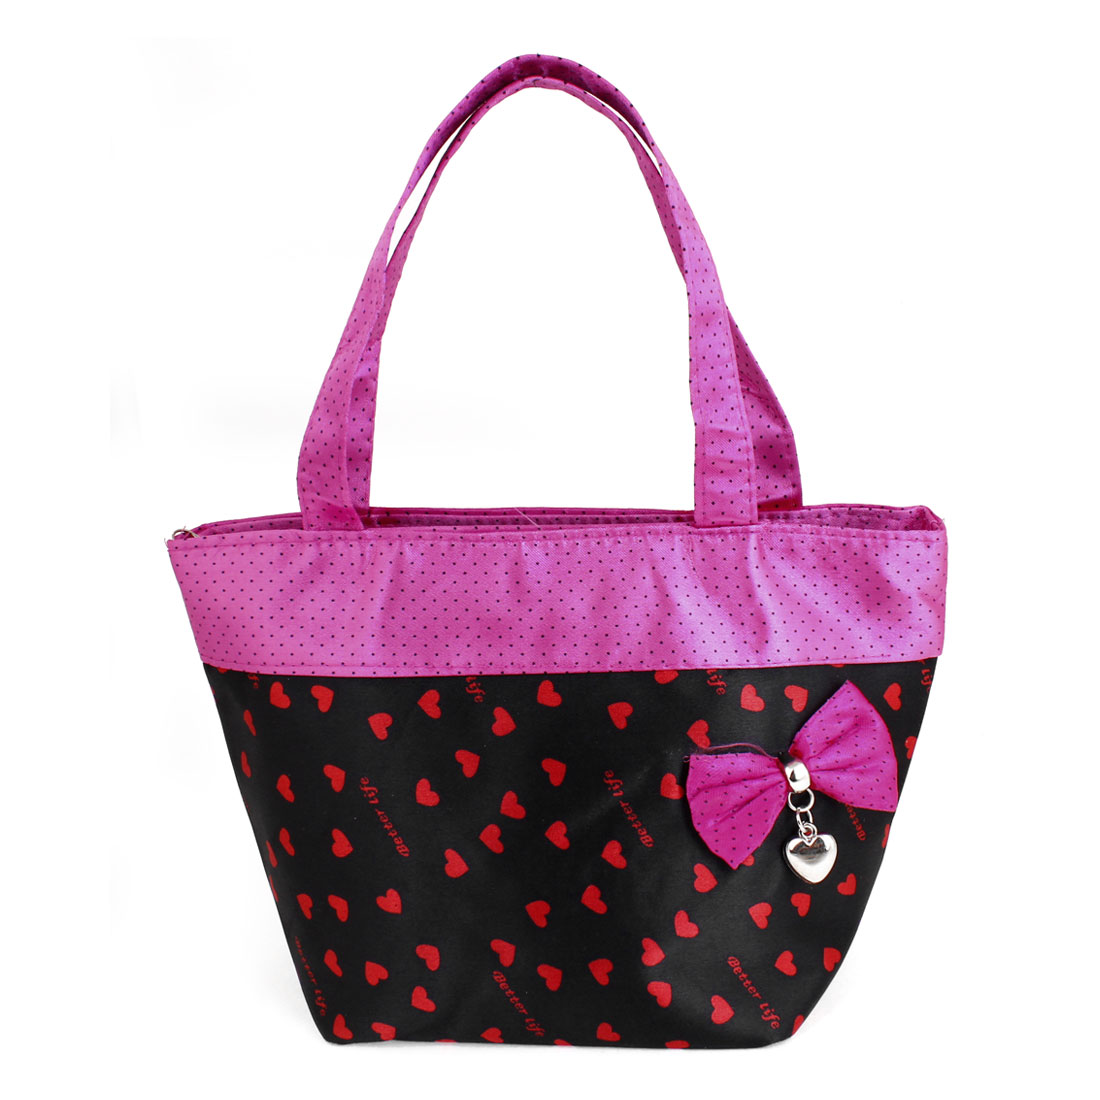 Pink Black Portable Bag Bowknot Detail Zip up Polyester Shopping Handbag